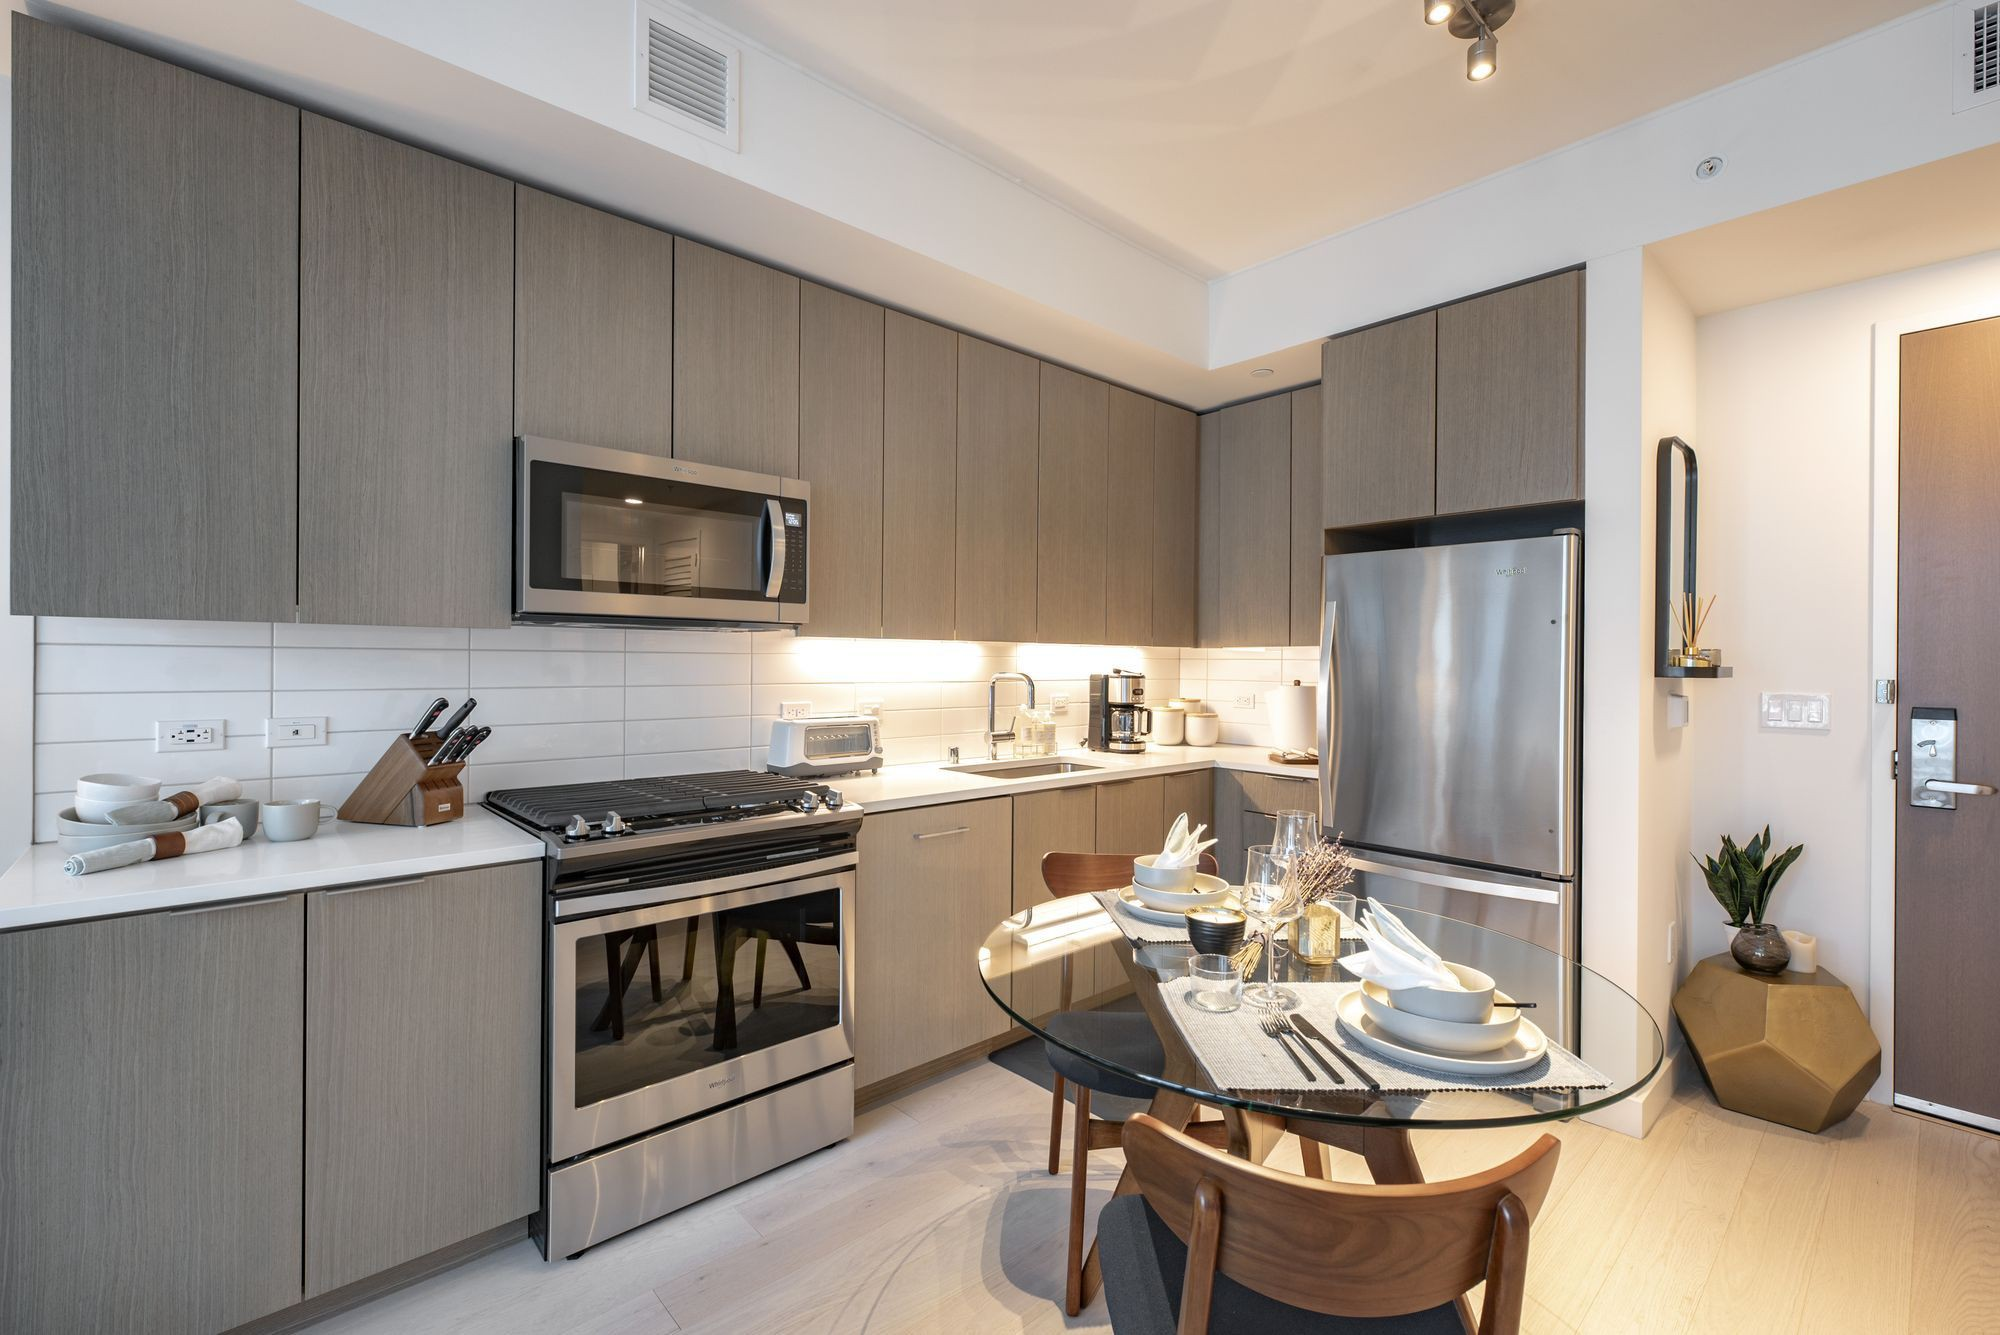 Apartments Near Los Angeles Aven for Los Angeles Students in Los Angeles, CA